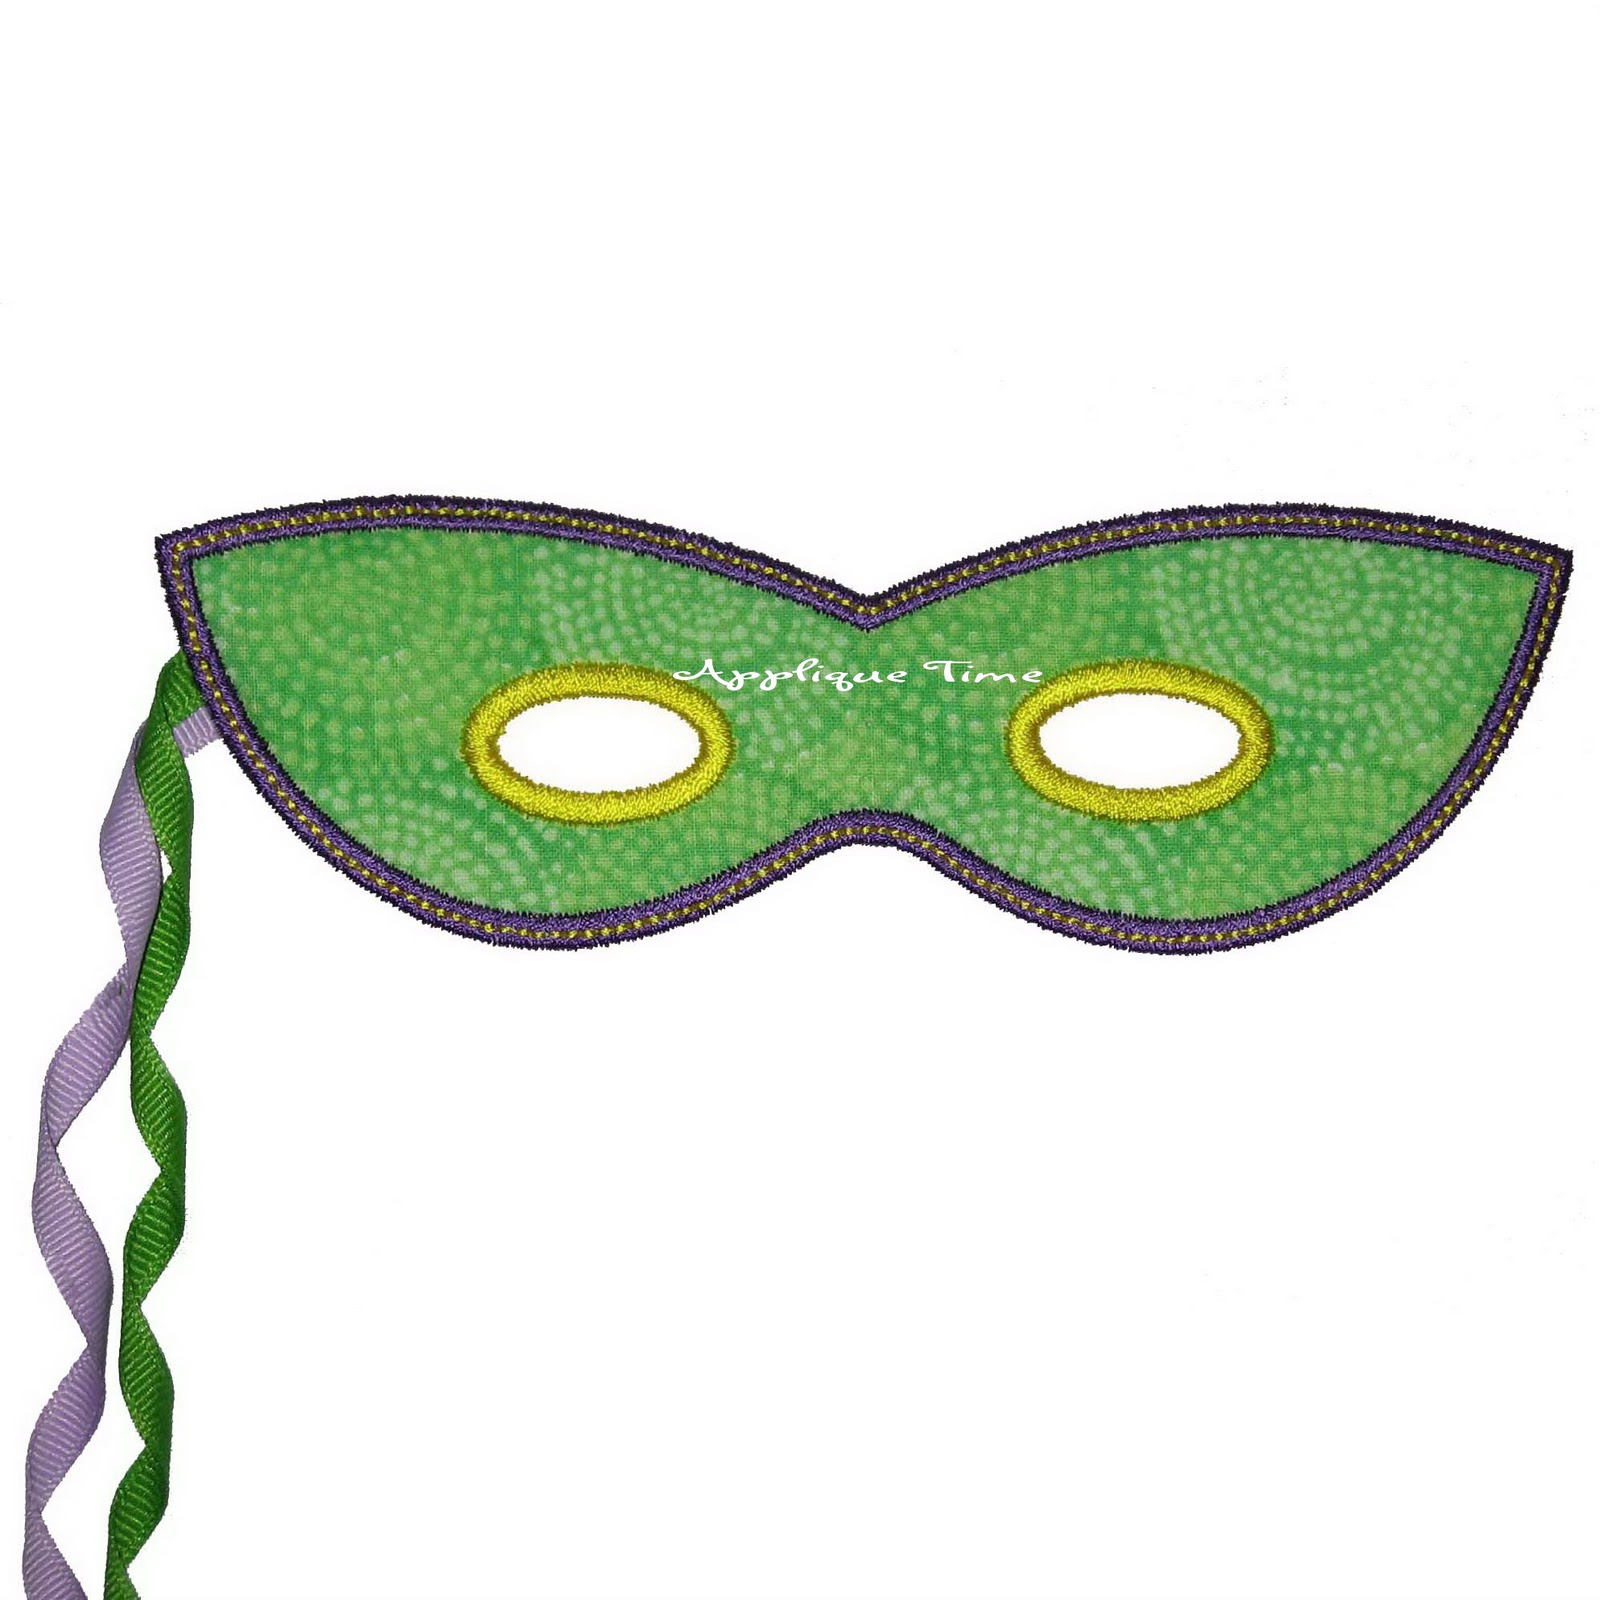 Masquerade Ball Clipart - ClipArt Best